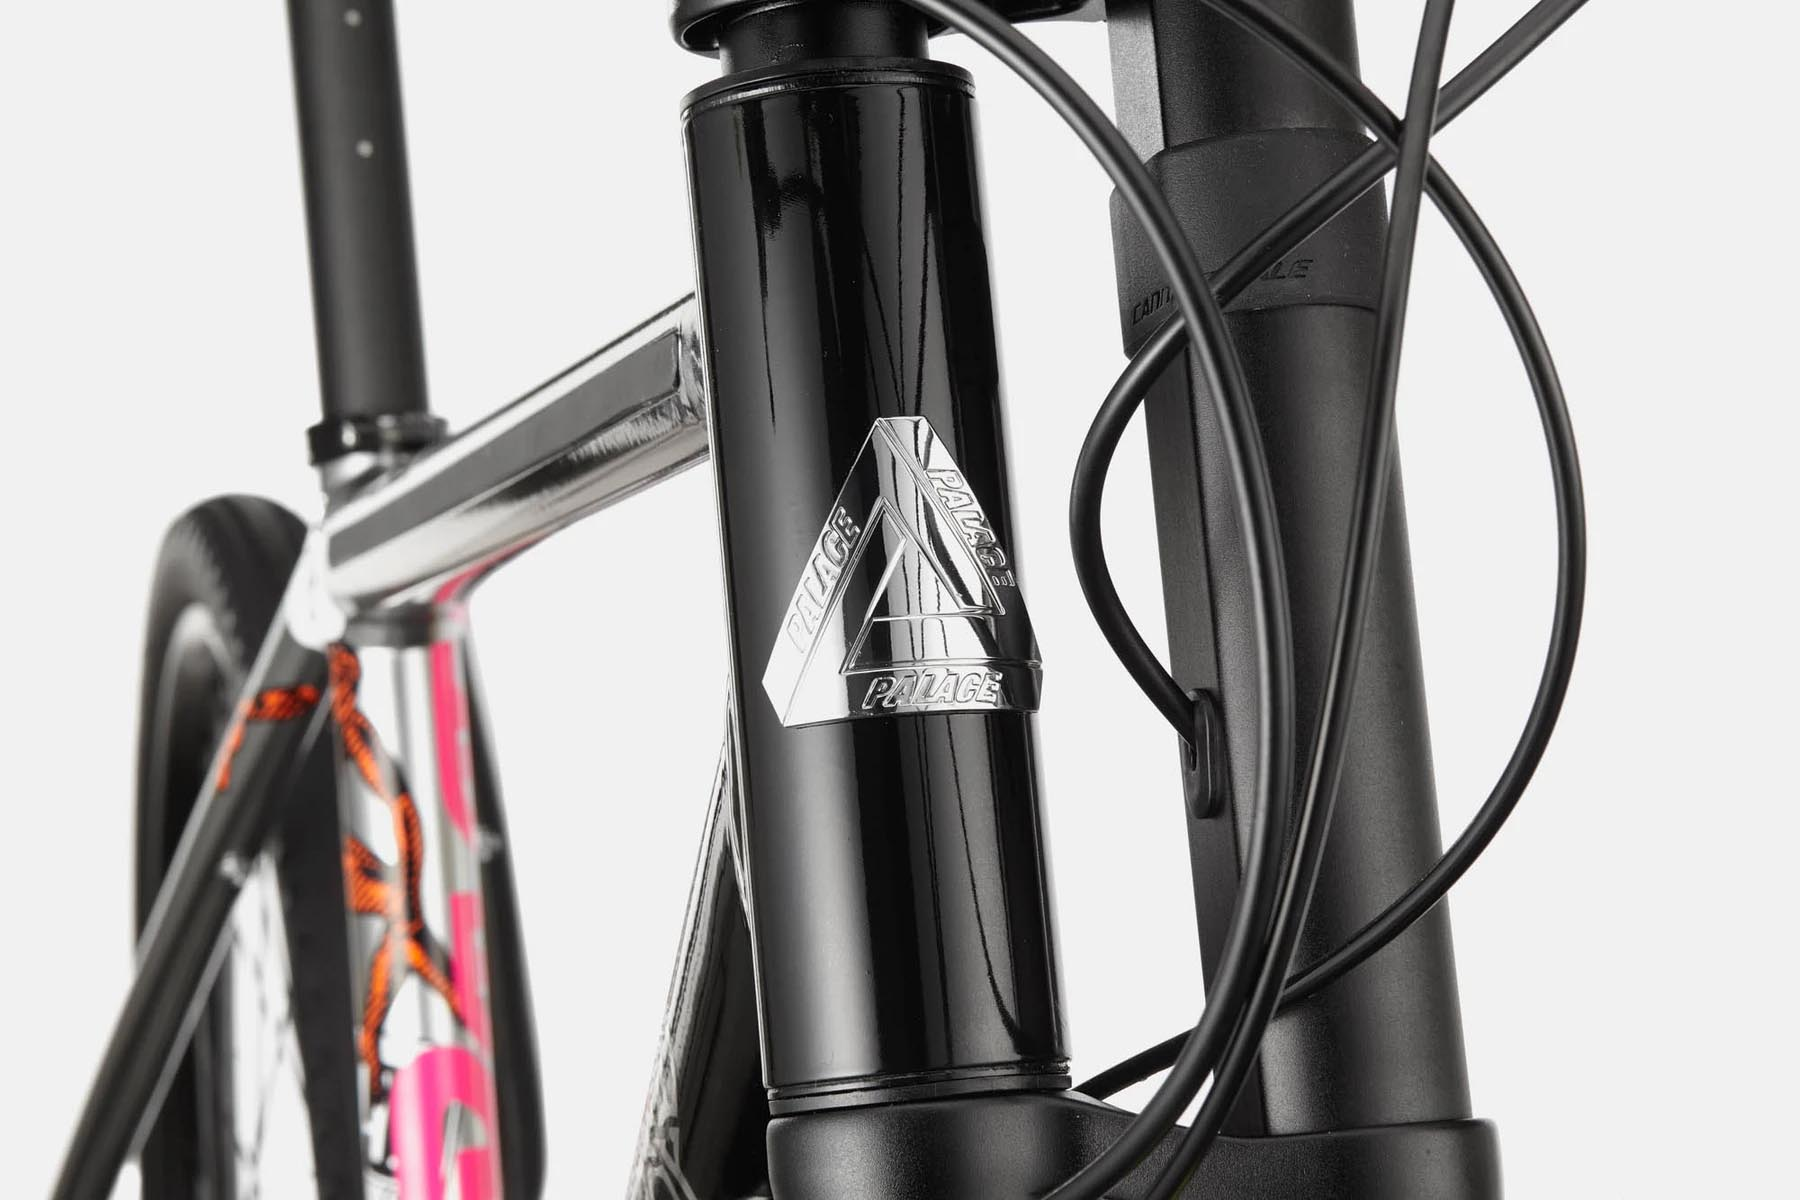 Cannondale x Palace Mad Boy head badge